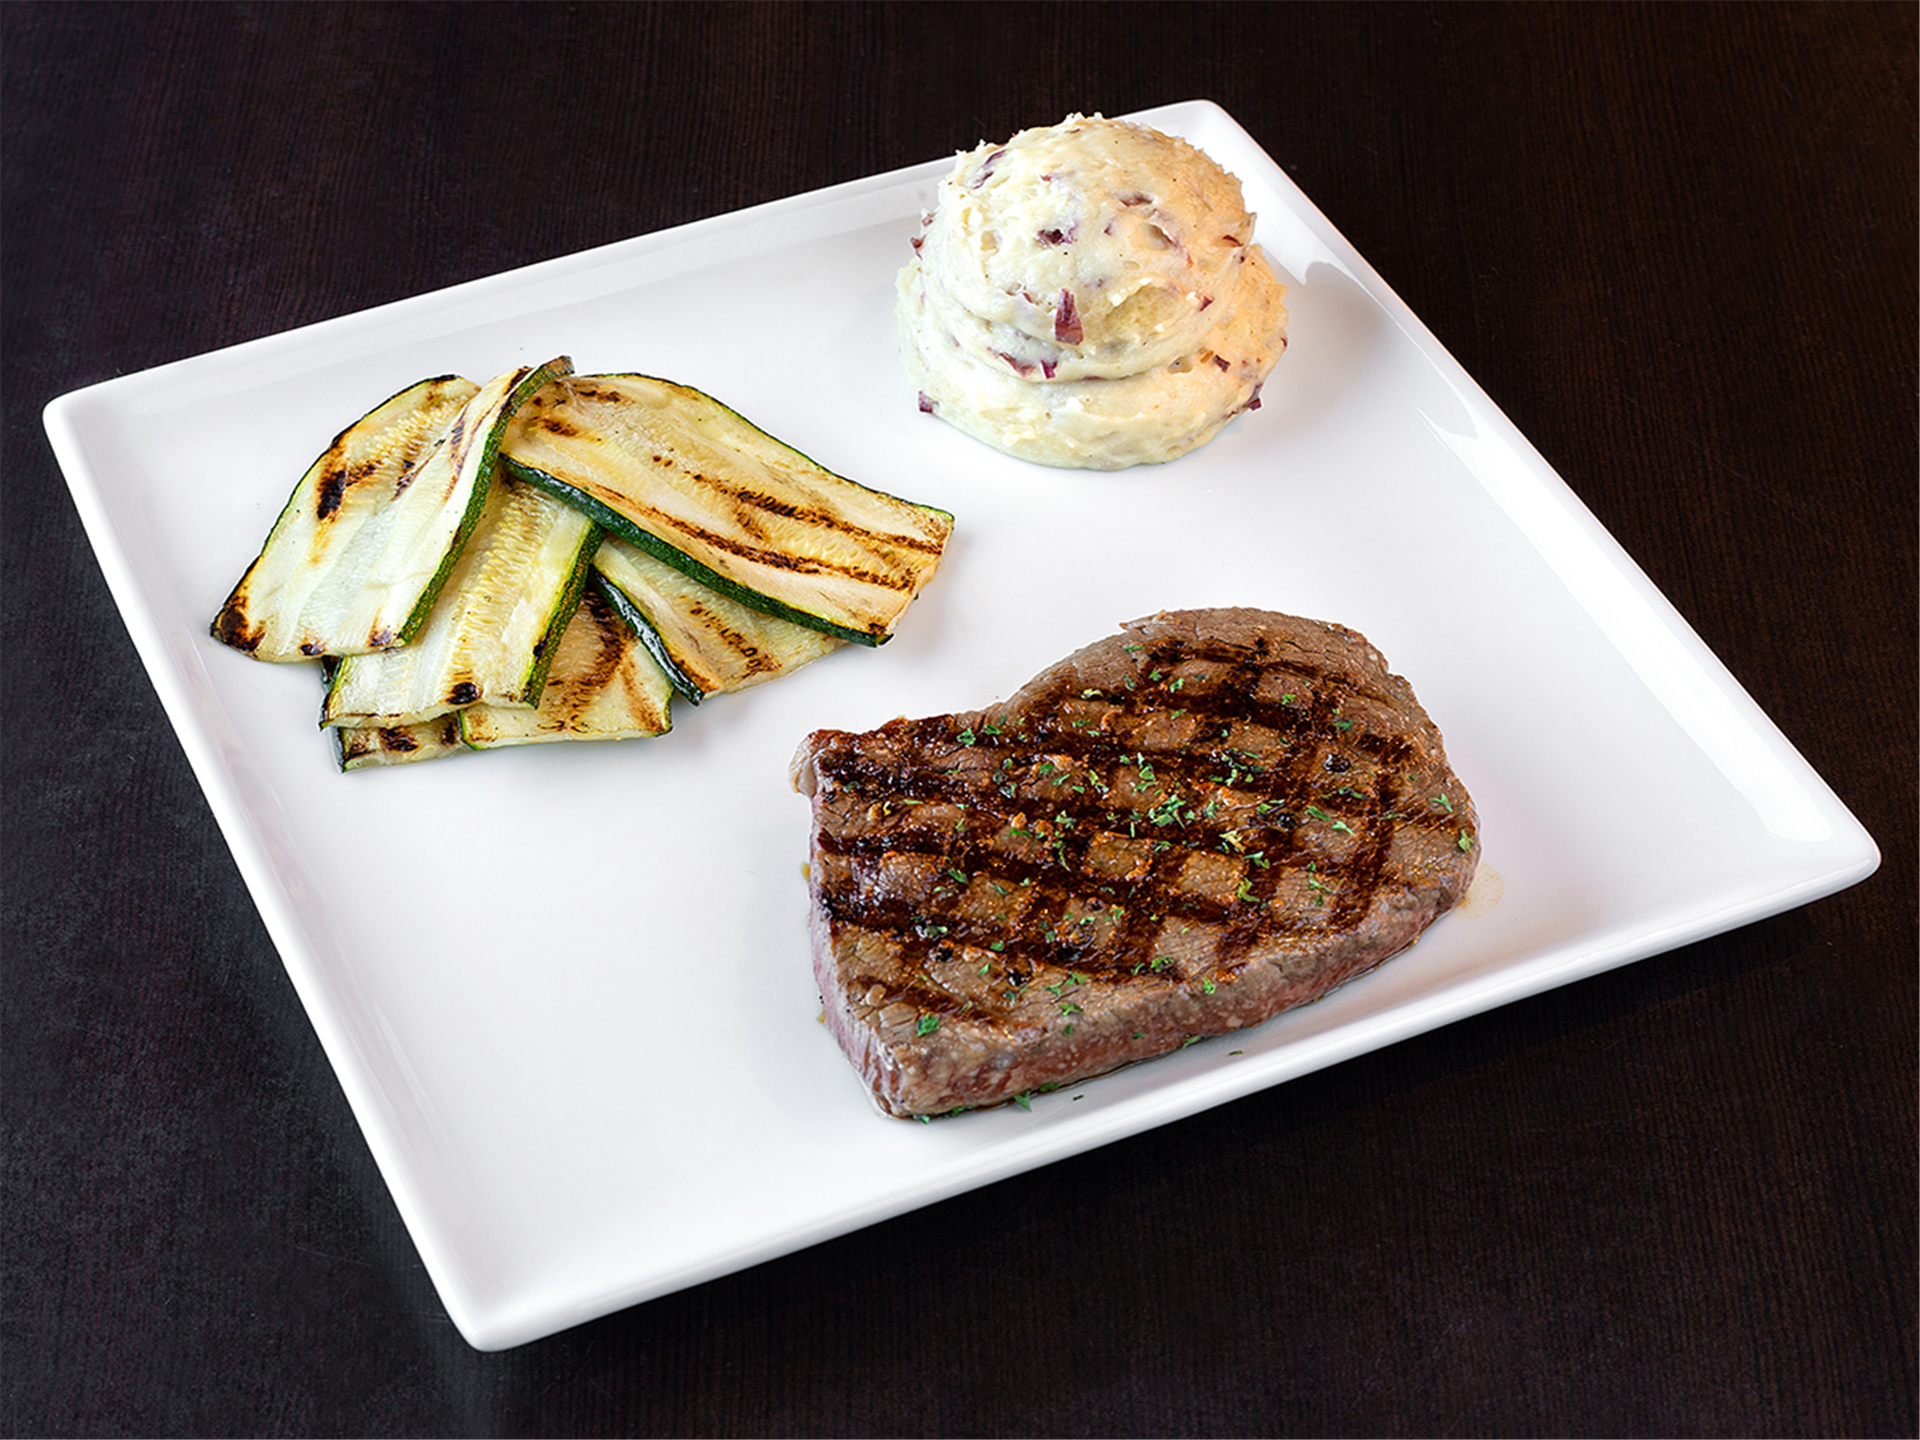 Sirloin with a side of mashed potatoes and grilled zuchinni